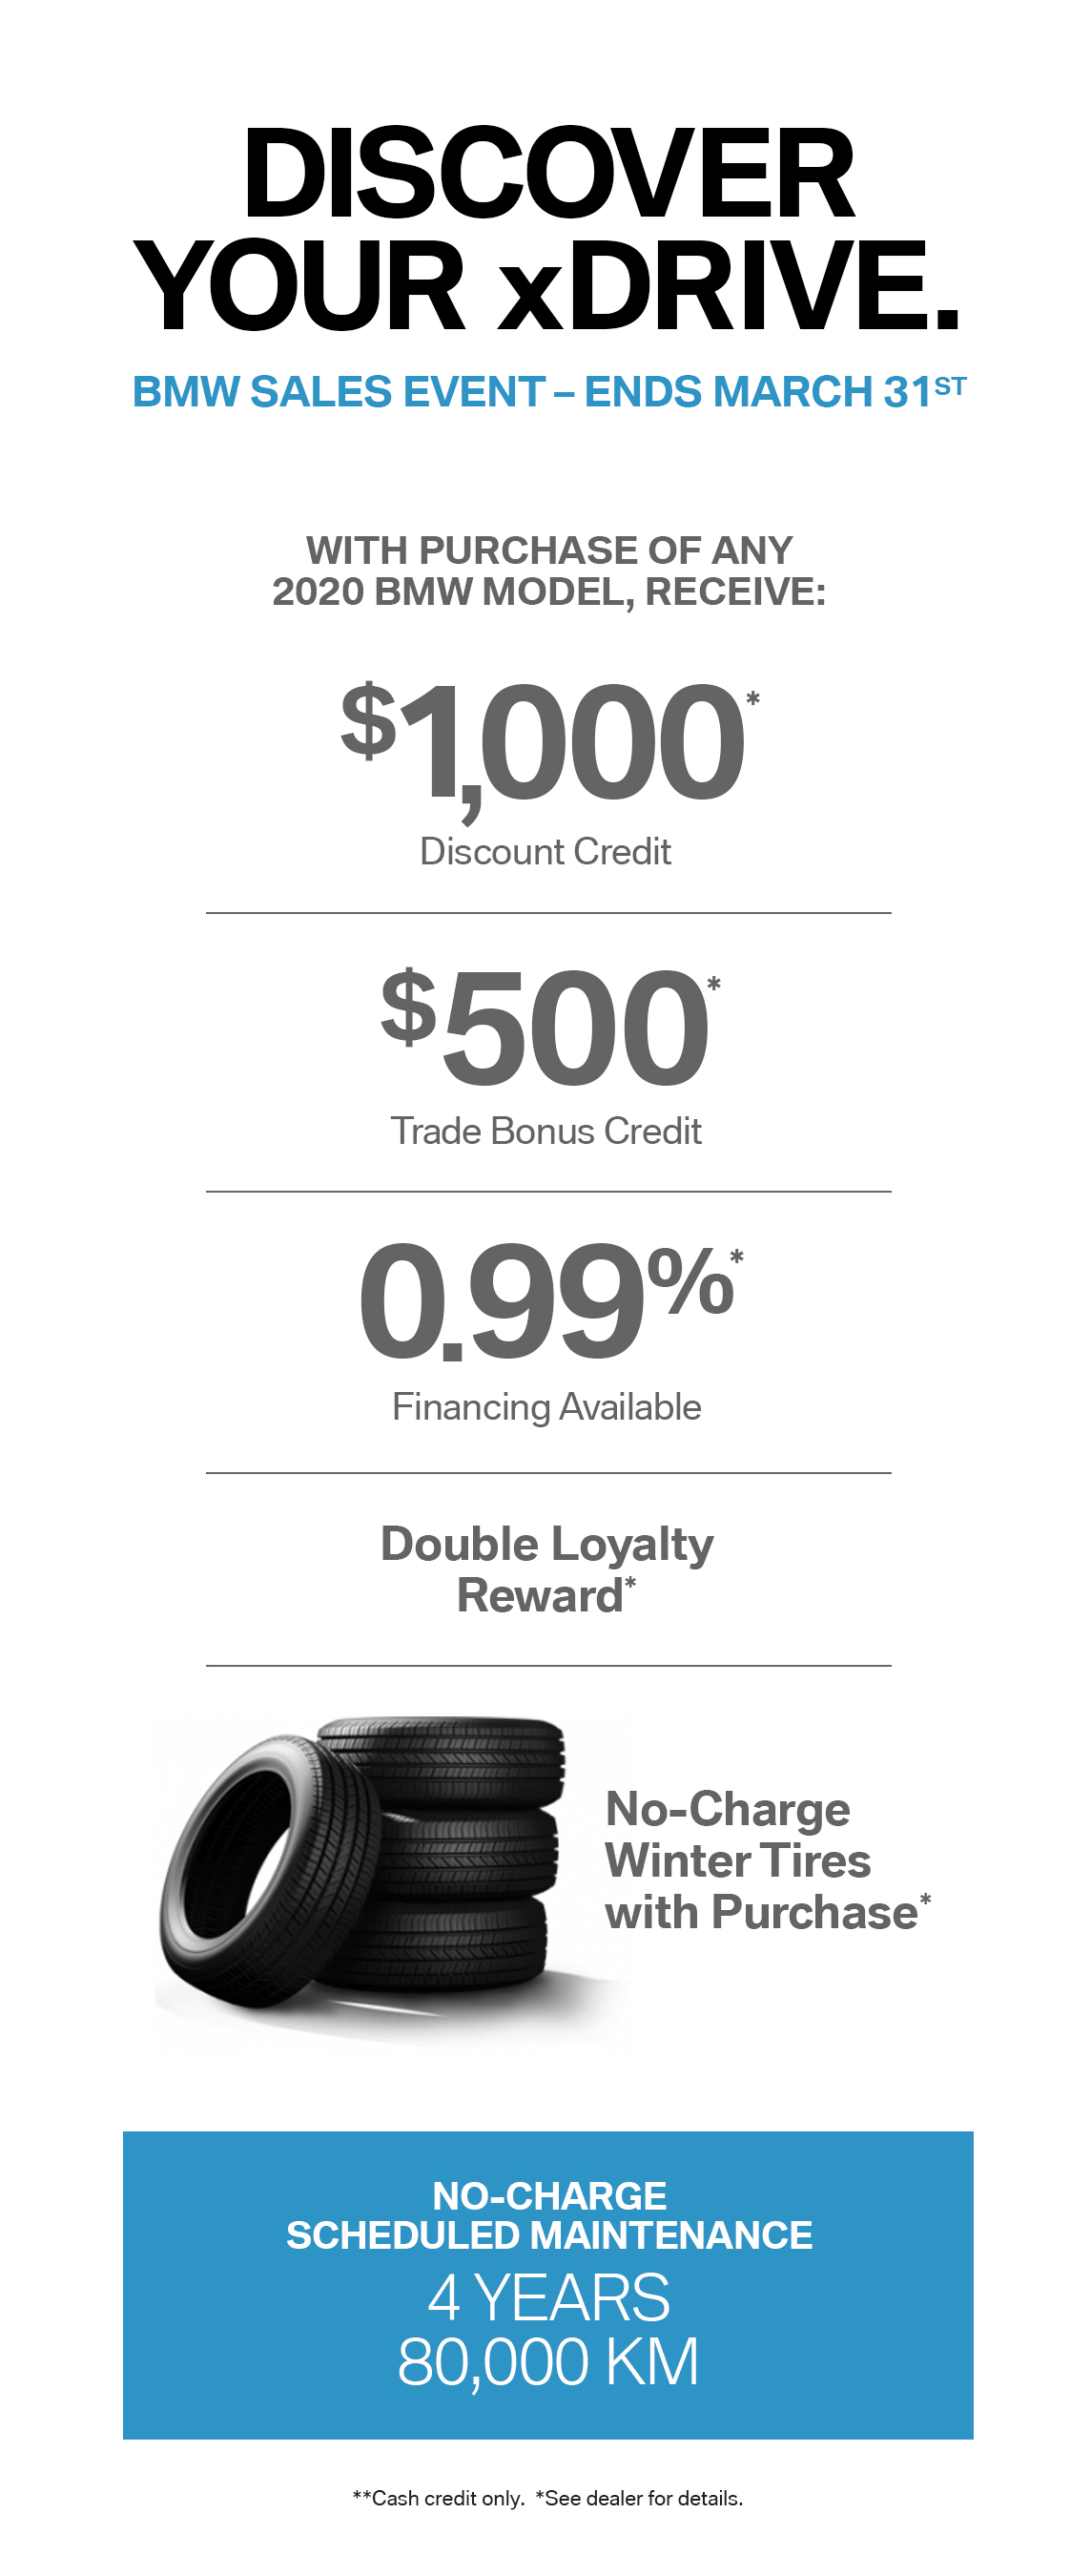 Bmw 276 Xdrive Sales Event Landing Page (4)